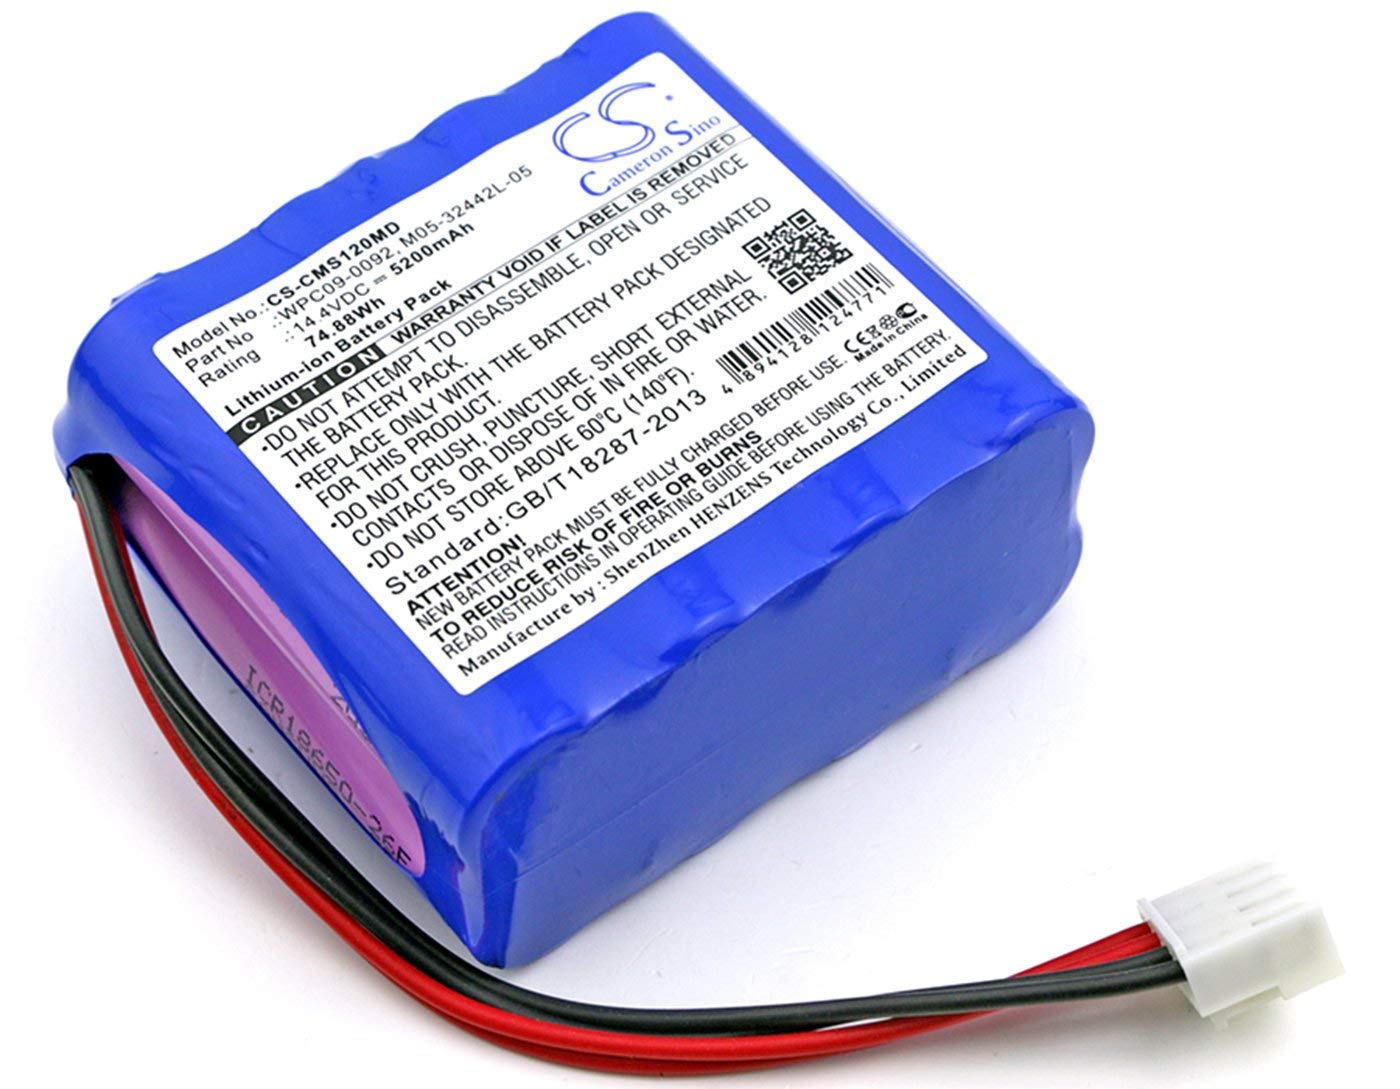 VINTRONS, CONTEC M05-32442L-05, WP-18650-14.4-4400, WP-18650-14.4-5200, WPC09-0092 Replacement Battery for CONTEC ECG 1201, ECG 1201G, ECG-1201, ECG-1201G,